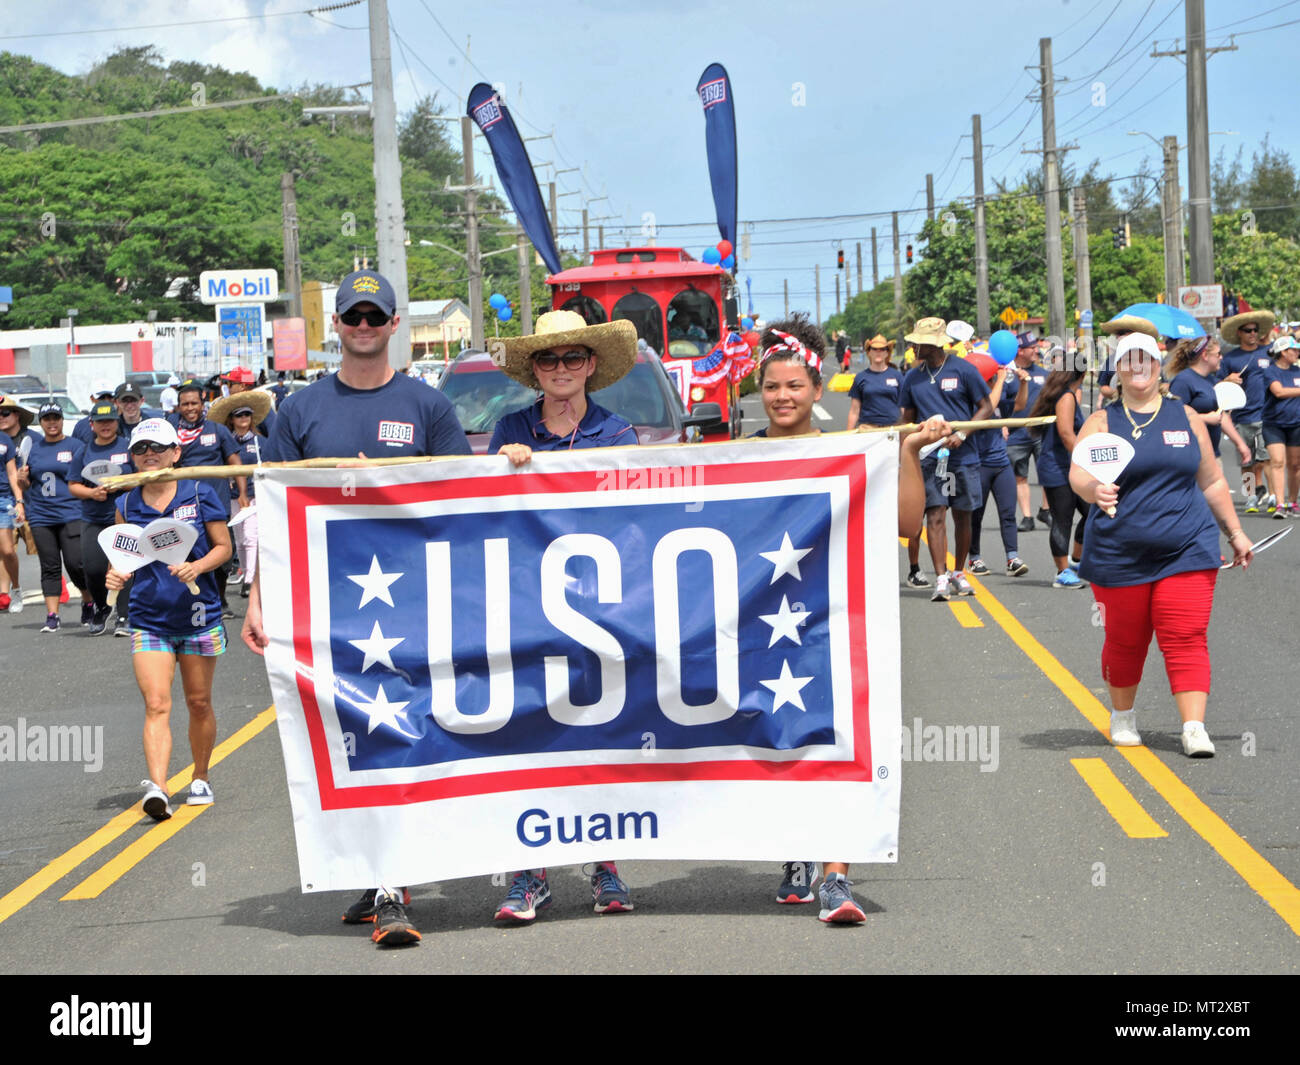 170721-N-ZD021-450  HAGATNA, Guam (July 21, 2017) Volunteers from the United Services Organization (USO) Guam carry a banner during Guam's annual Liberation Day Parade in Hagatna, Guam, July 21. The 2017 Guam Liberation Parade celebrates the 73rd anniversary of the liberation of Guam from Japanese occupation by U.S. forces during World War II. (U.S. Navy photo by Mass Communication Specialist 3rd Class Daniel Willoughby/Released) - Stock Image